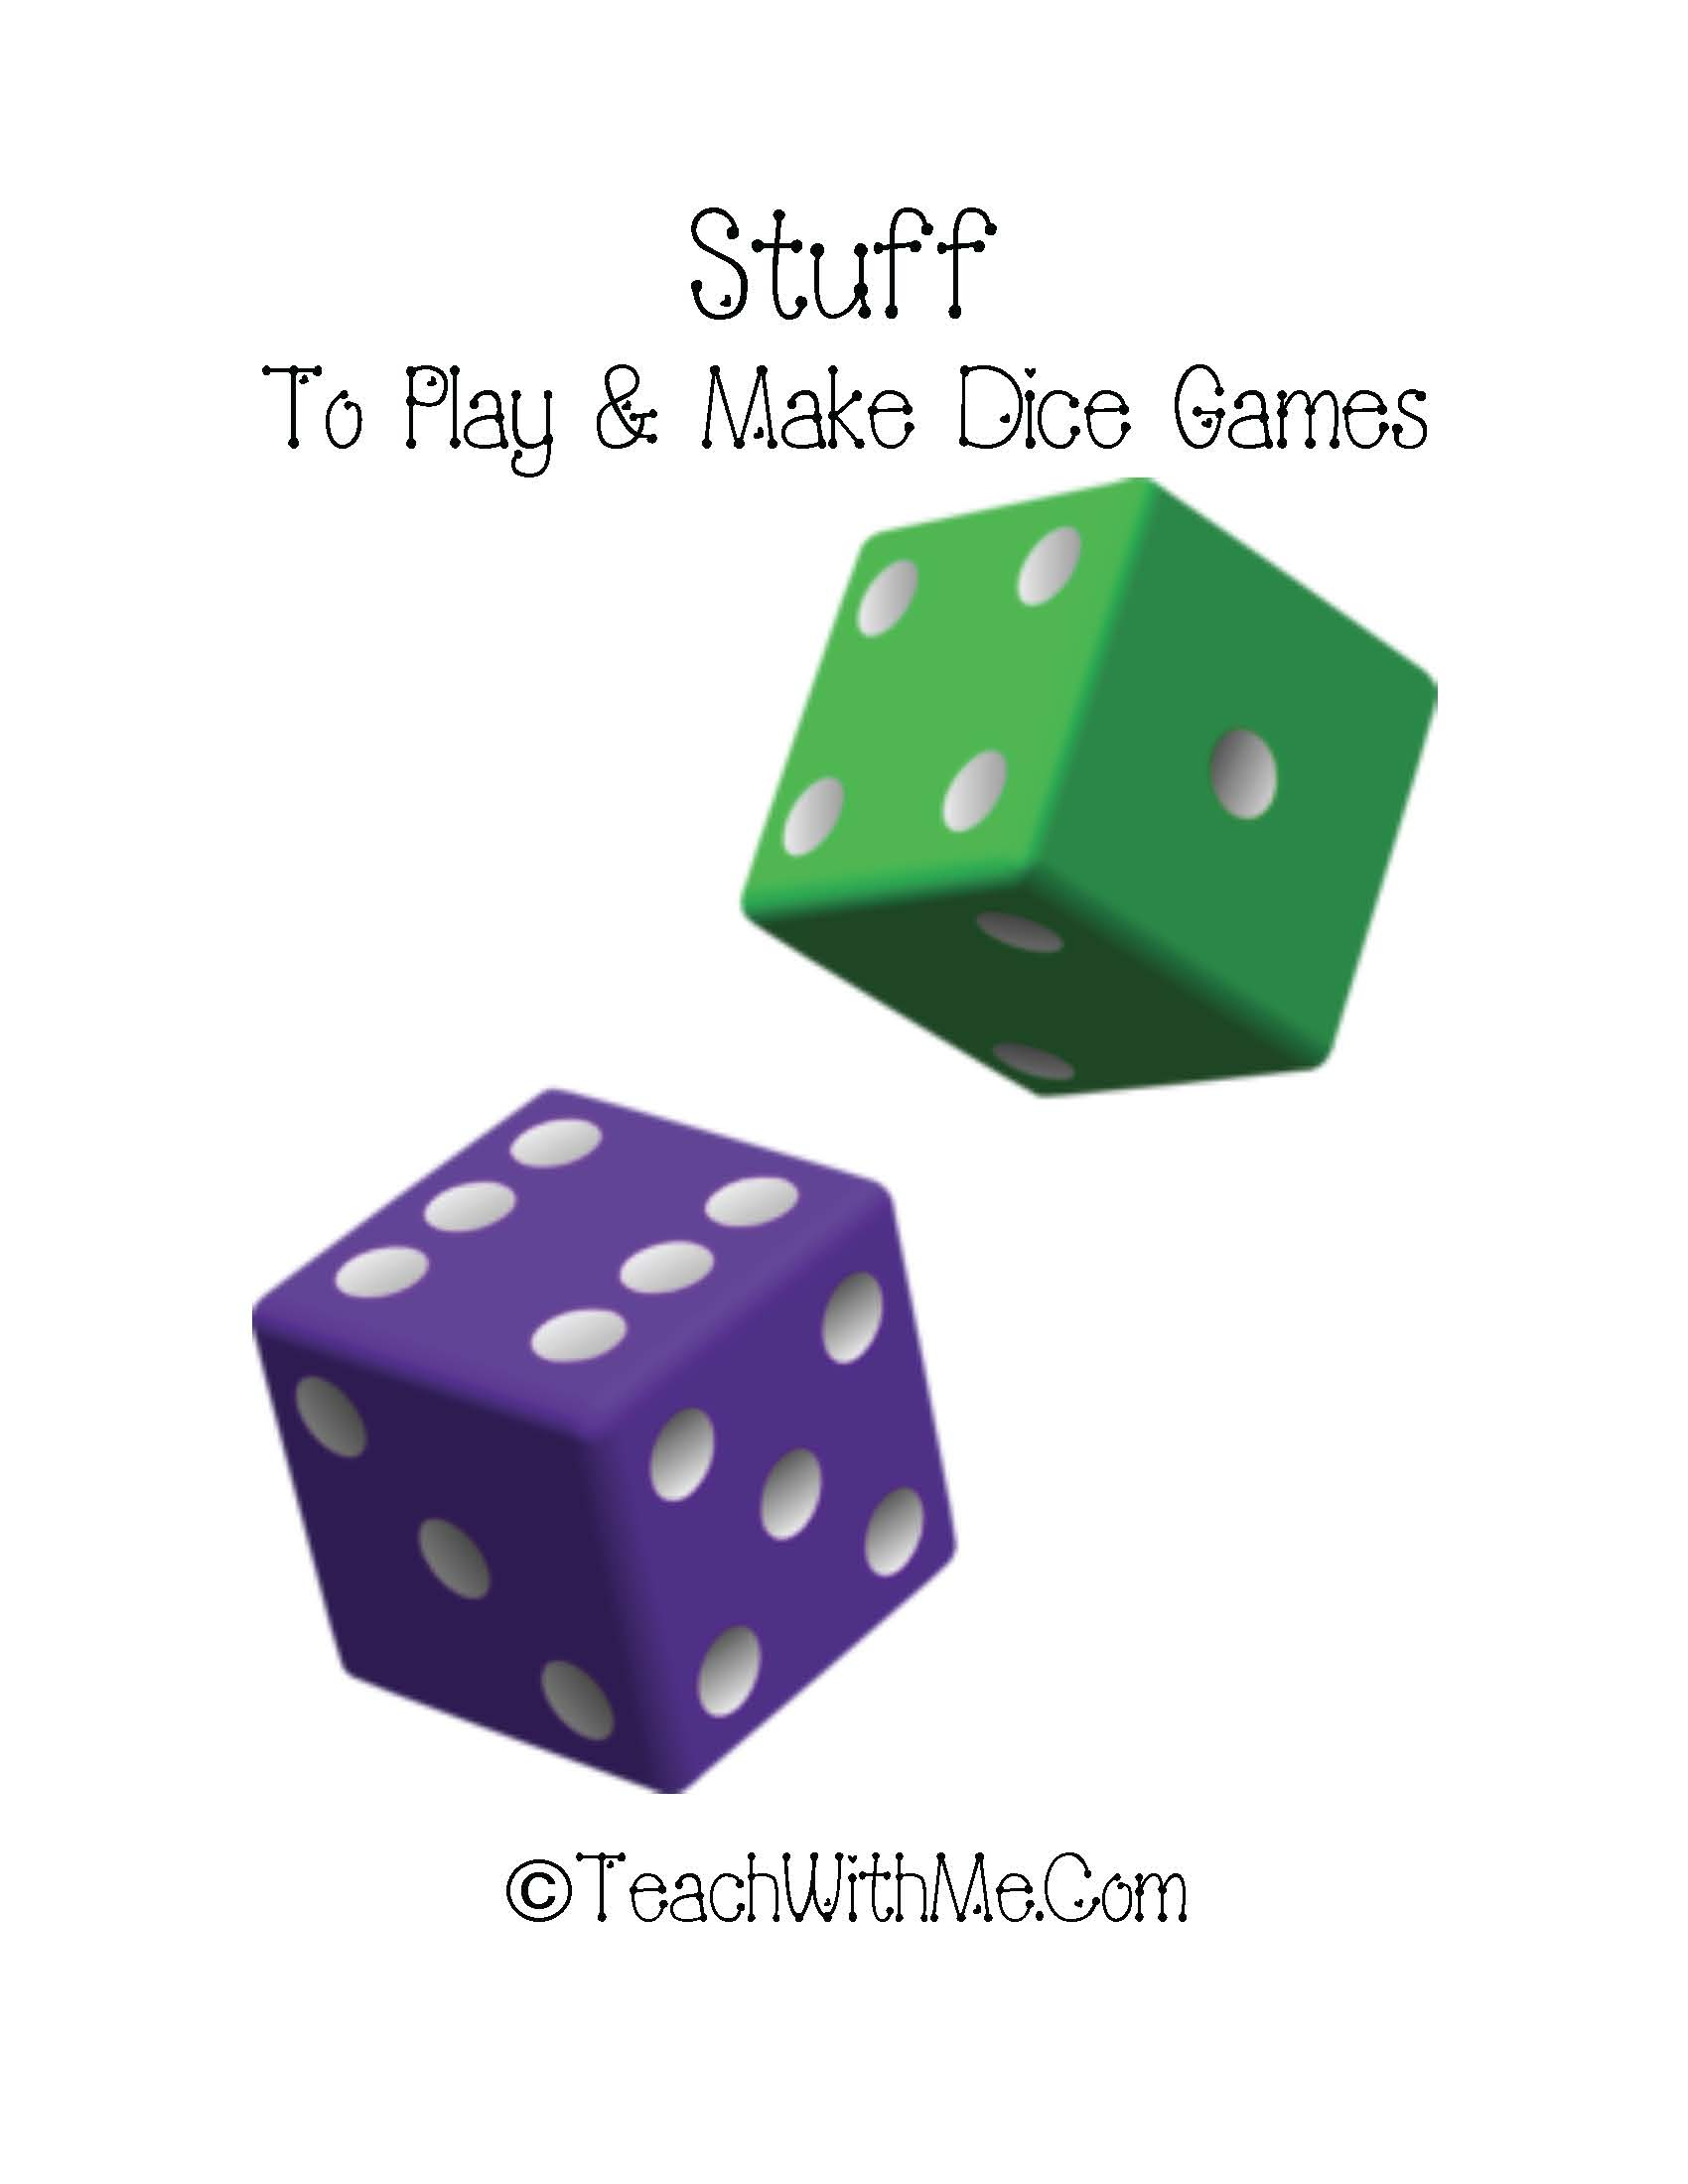 math games, dice games, math centers, addition and subtraction games, addition and subtraction centers, counting by 2's 3's 5's, skip counting activities, skip counting ideas, skip counting lessons, traceable number cards, traceable skip counting cards, number flashcards,